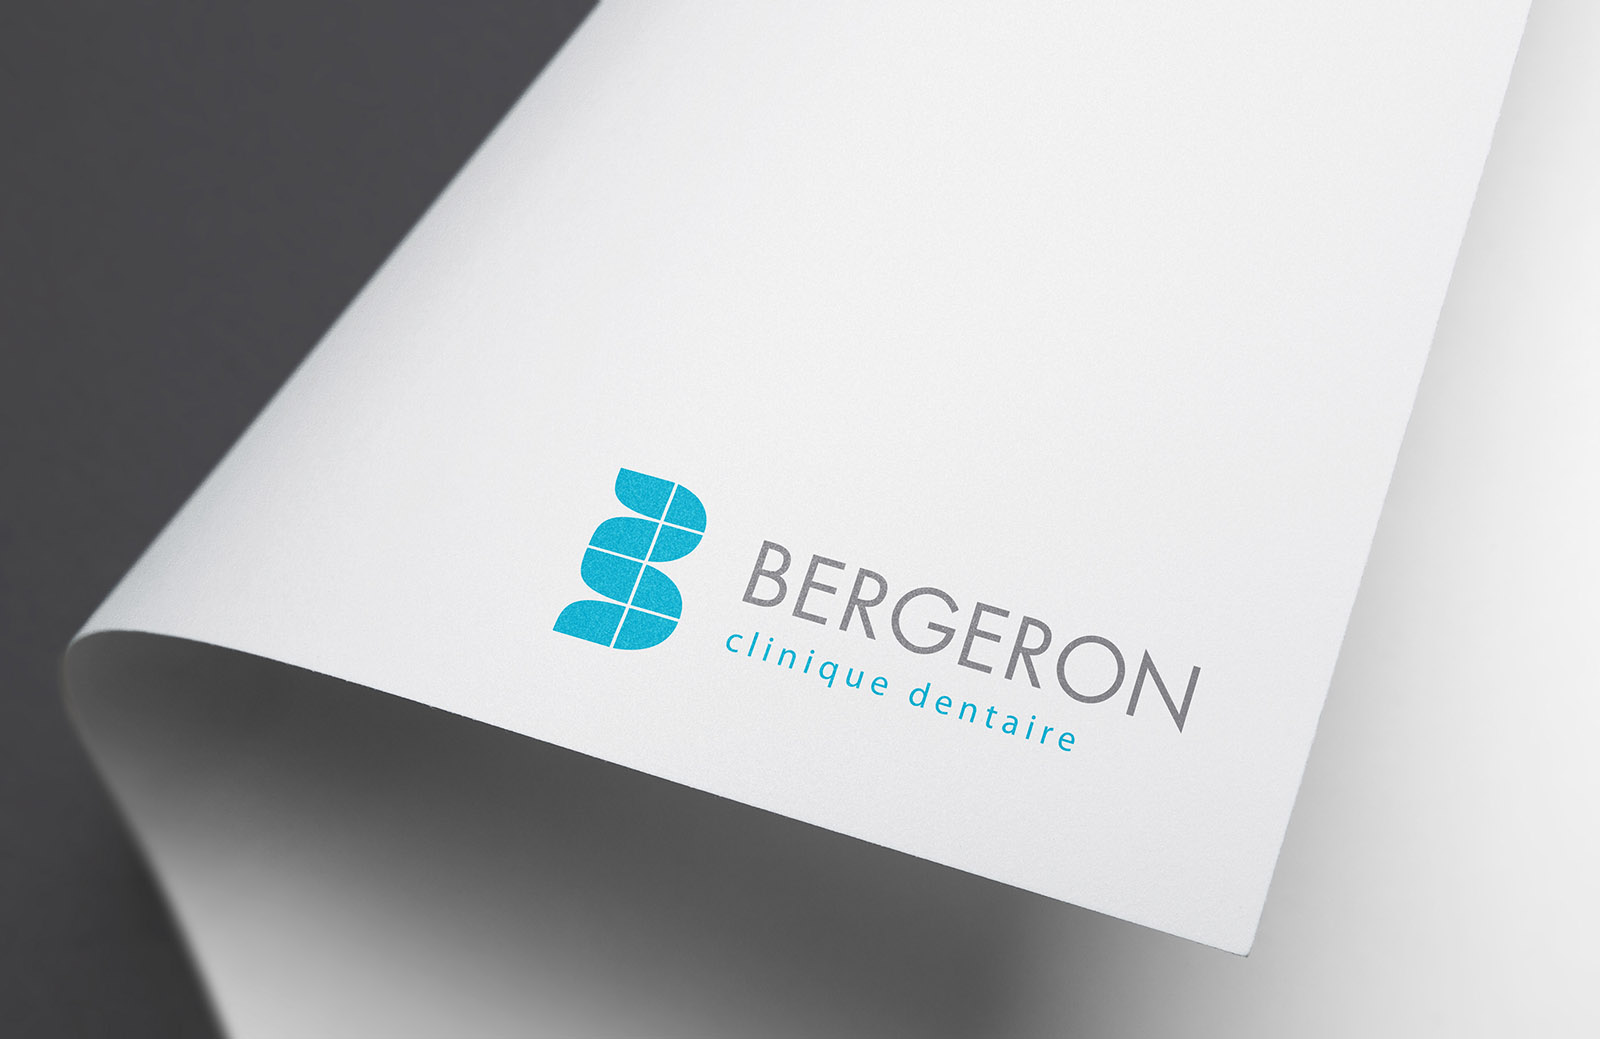 Clinique dentaire Bergeron - logo